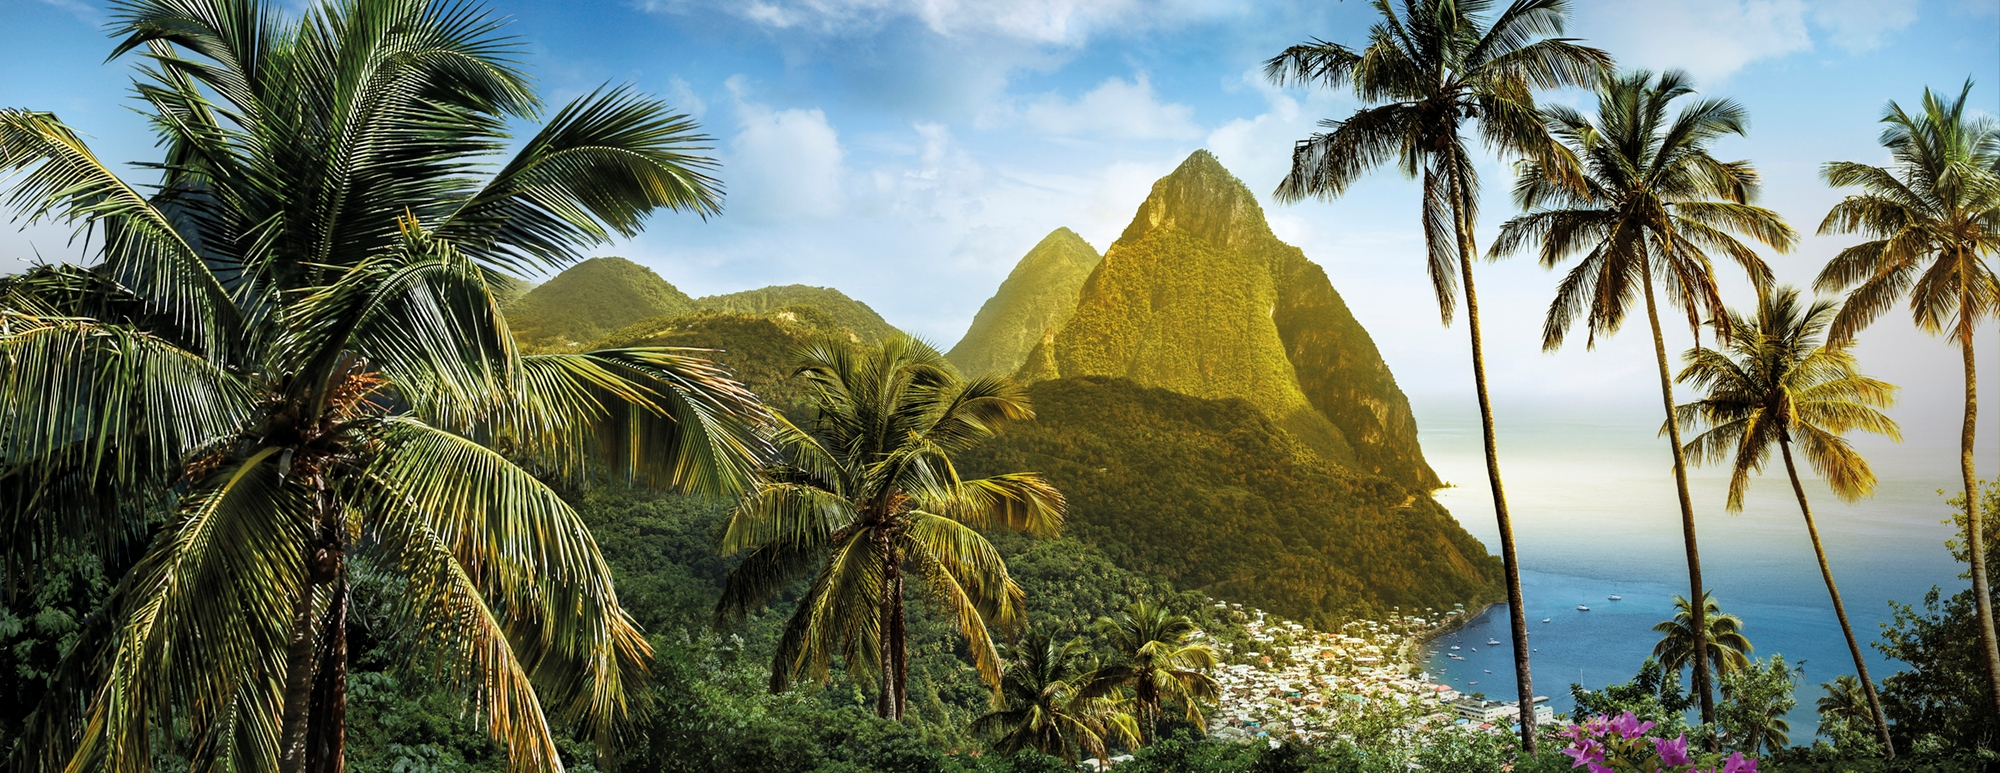 New-Piton-Soufriere_Evening_RGB-for-web-use-and-presentations-ONLY-not-for-print-use-1